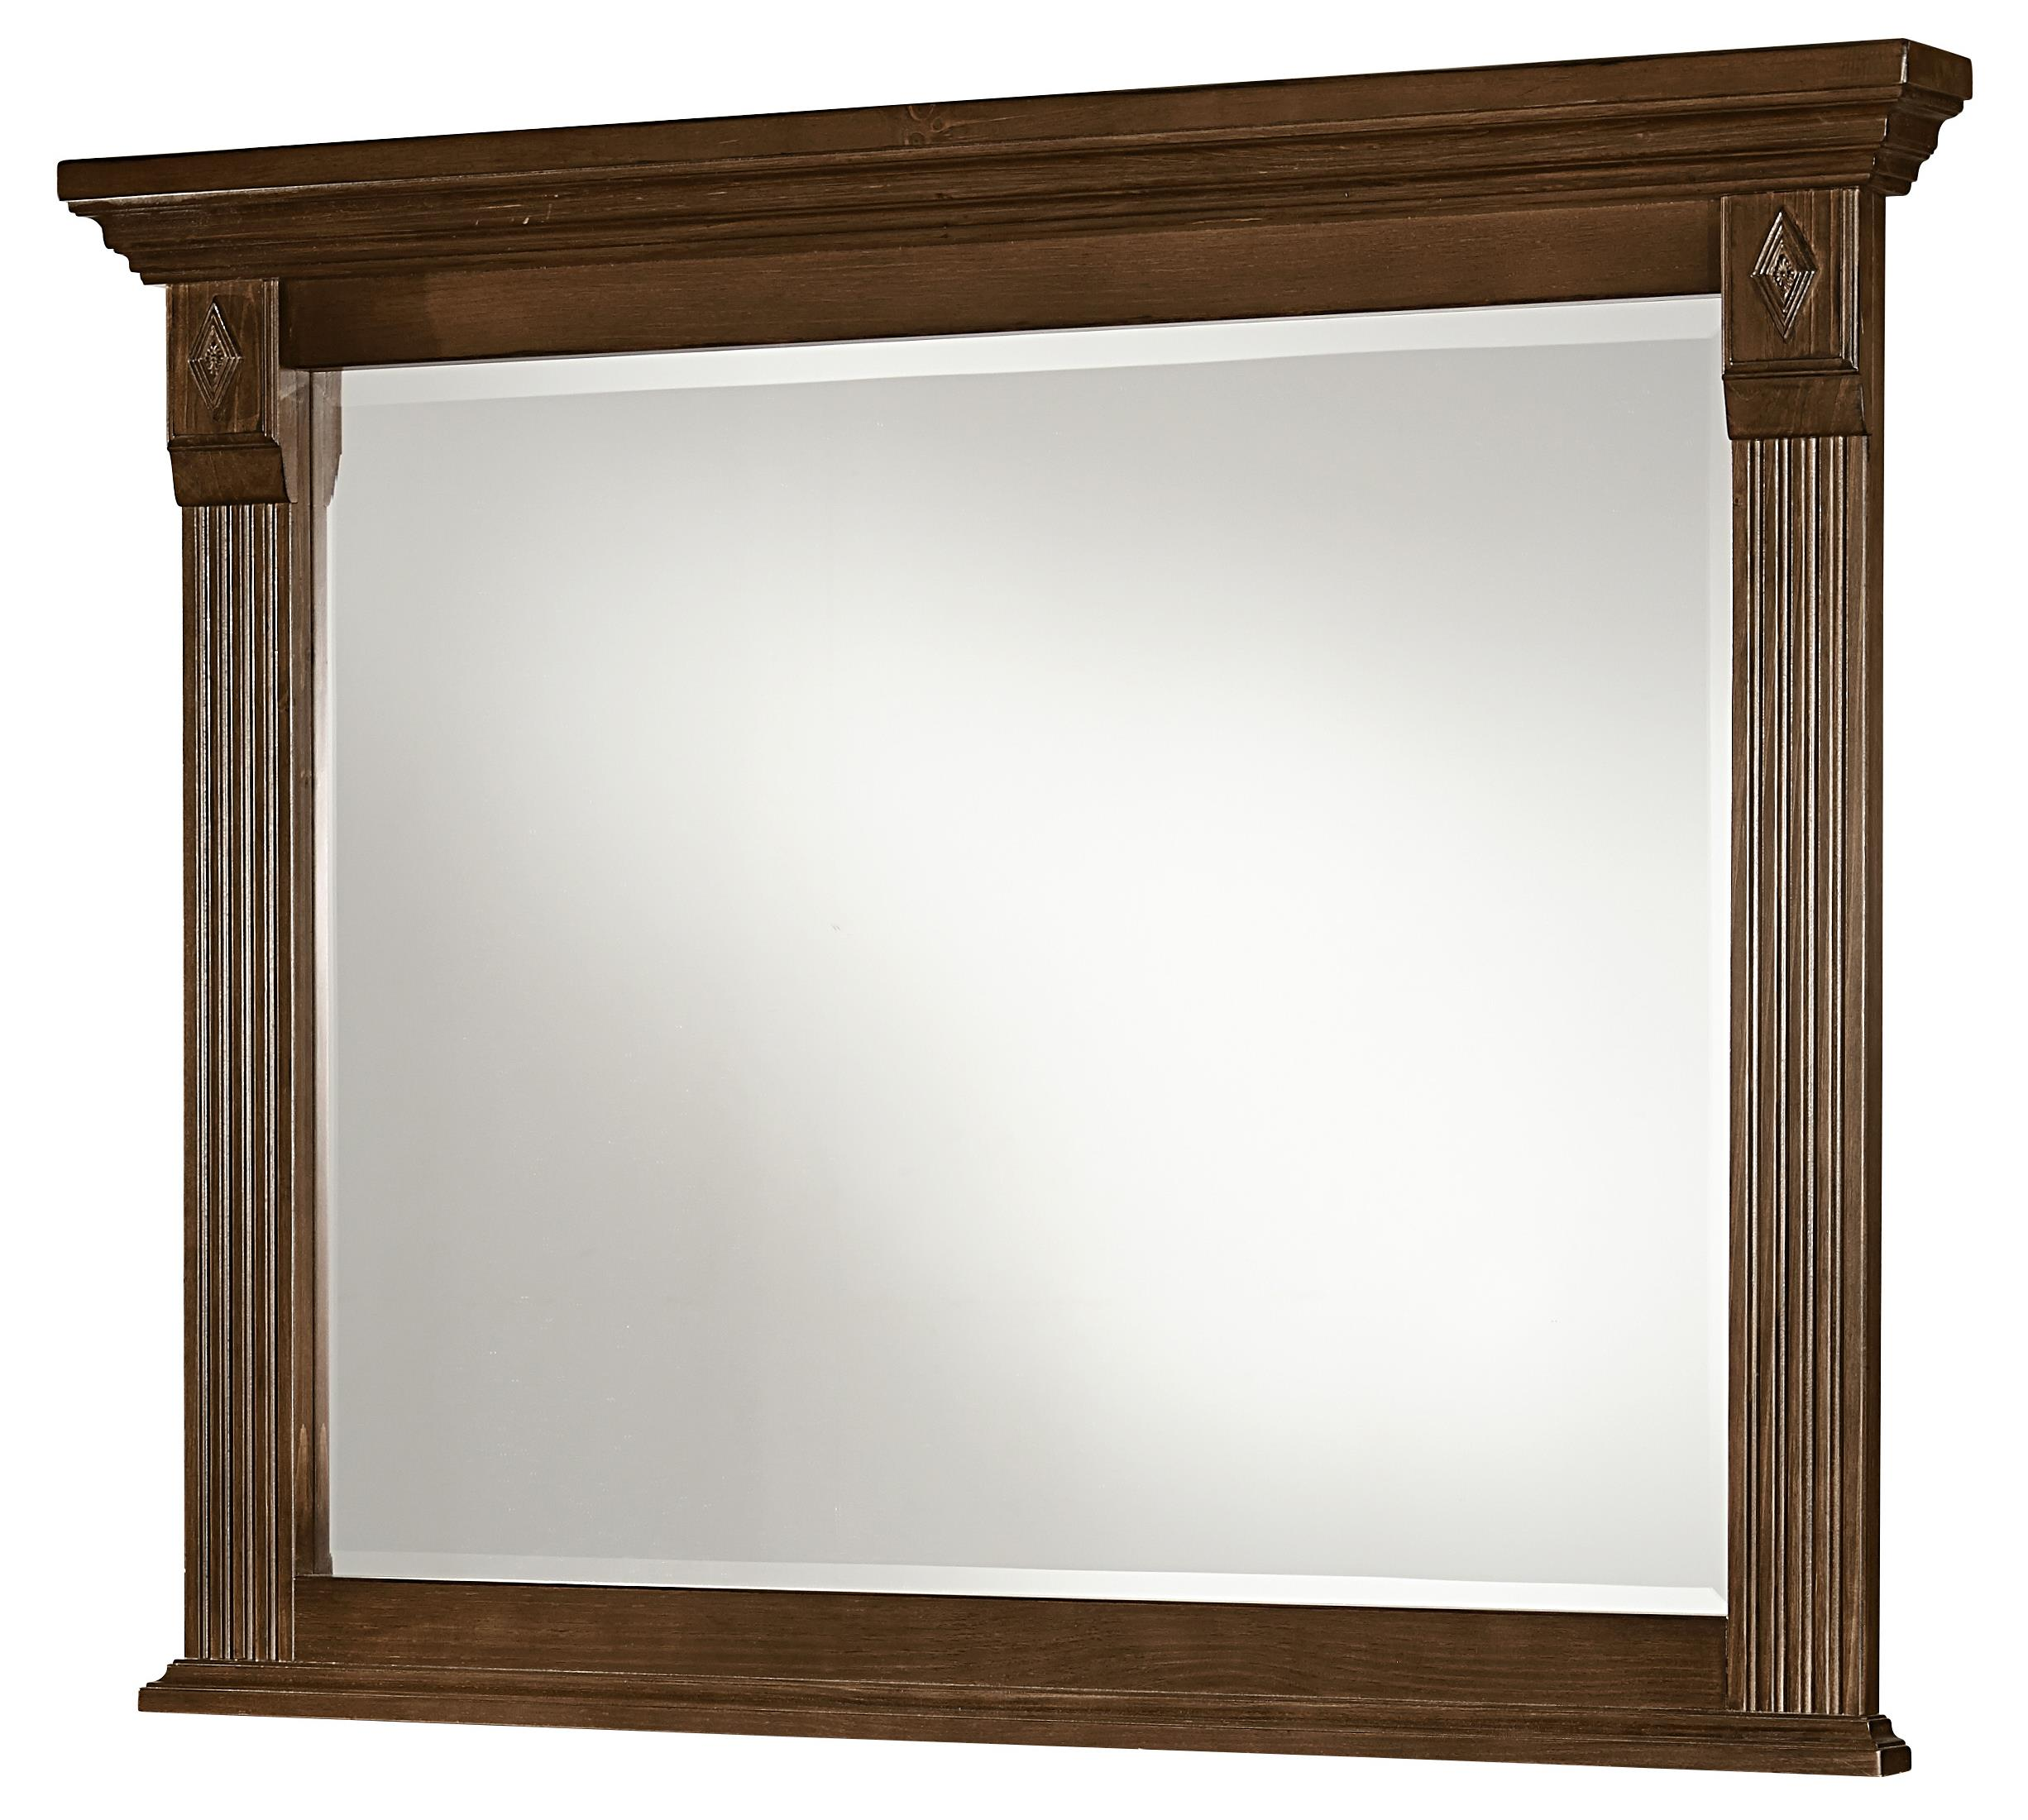 Vaughan Bassett Woodlands Landscape Mirror - Item Number: BB97-446